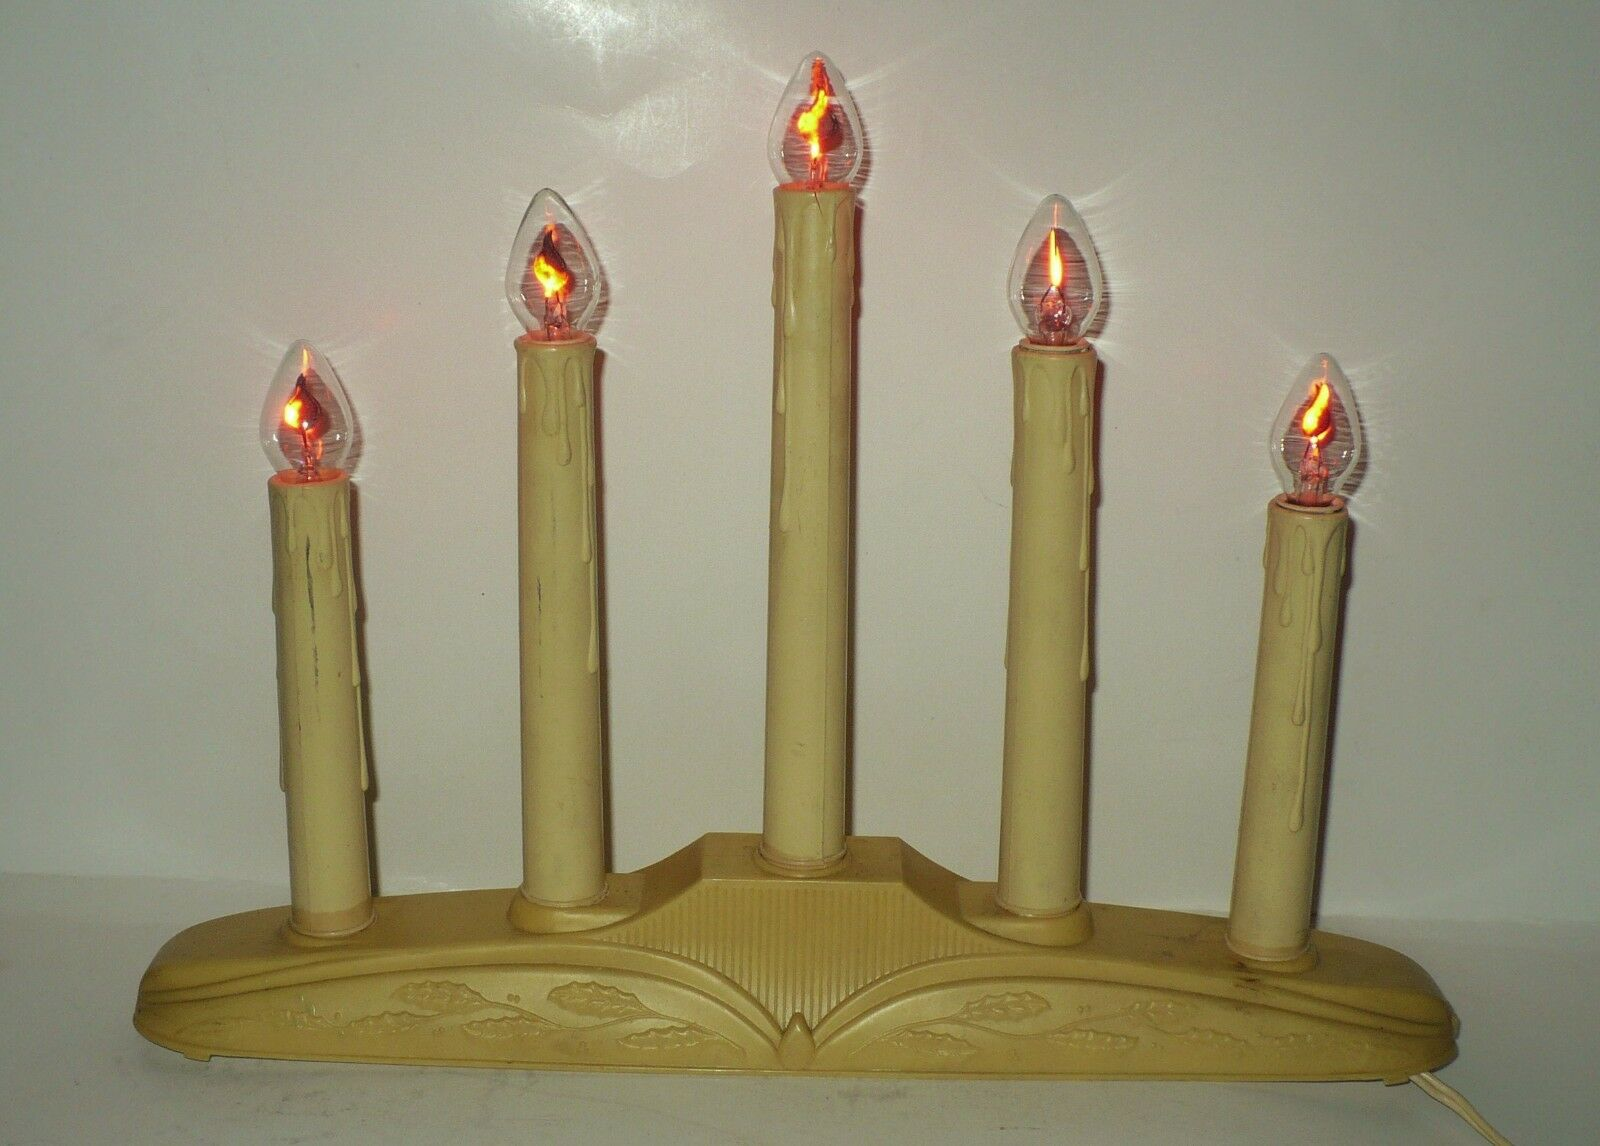 vintage christmas plastic 5 light electric candelabra with 5 flicker flame bulbs 1 of 4only 1 available vintage christmas plastic 5 light